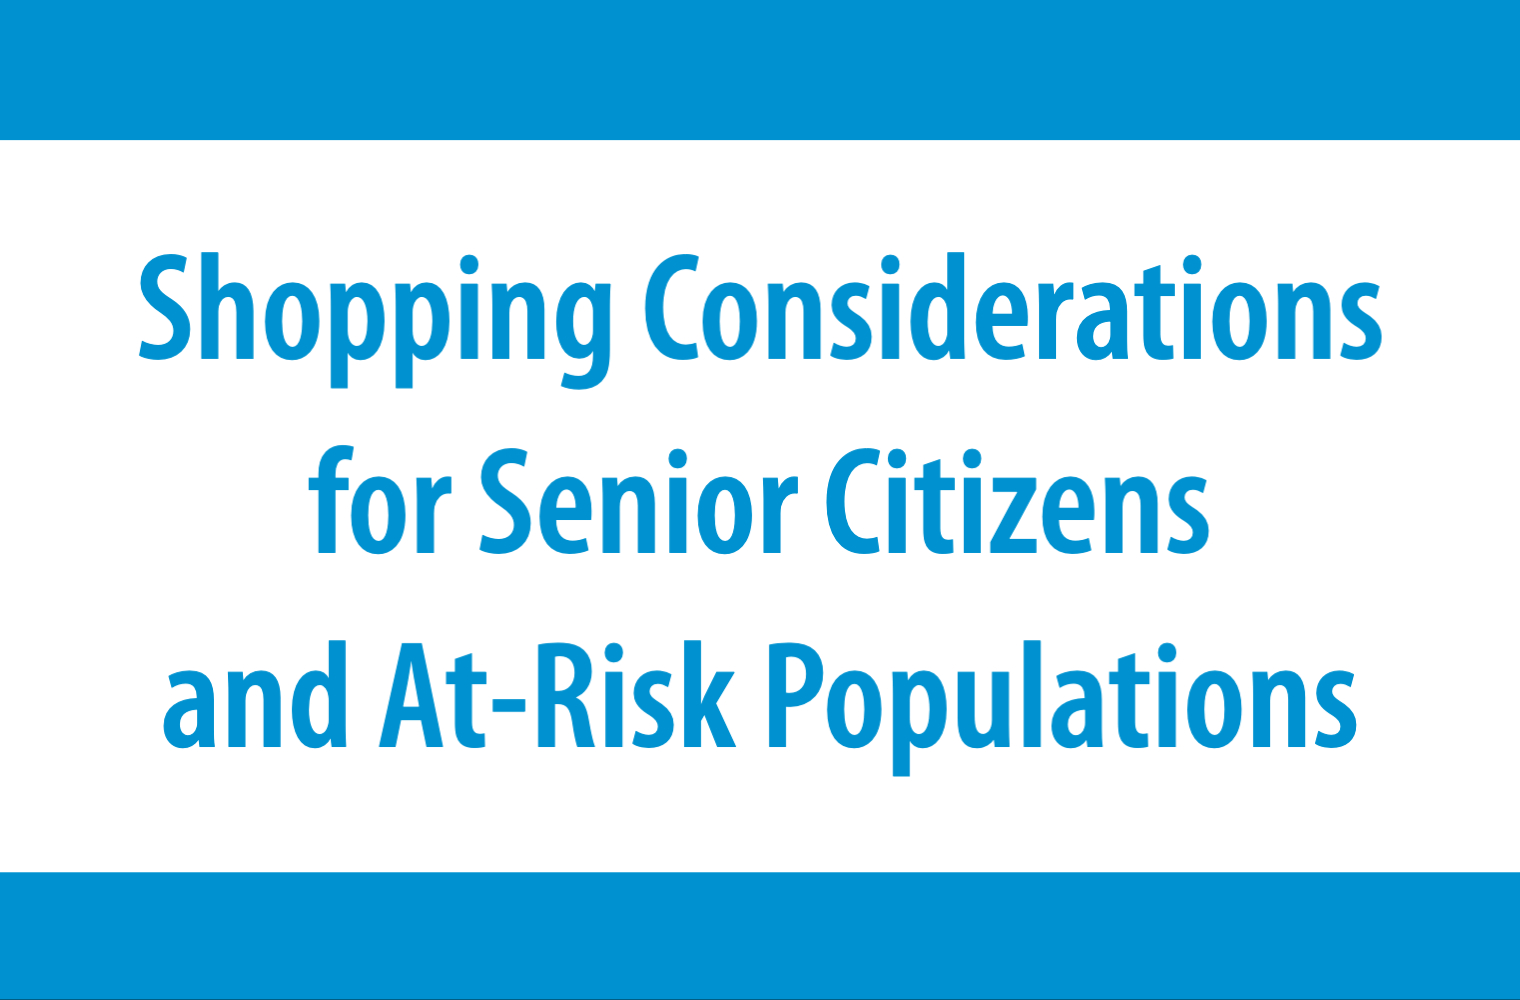 Shopping Considerations for Senior Citizens and At-Risk Populations